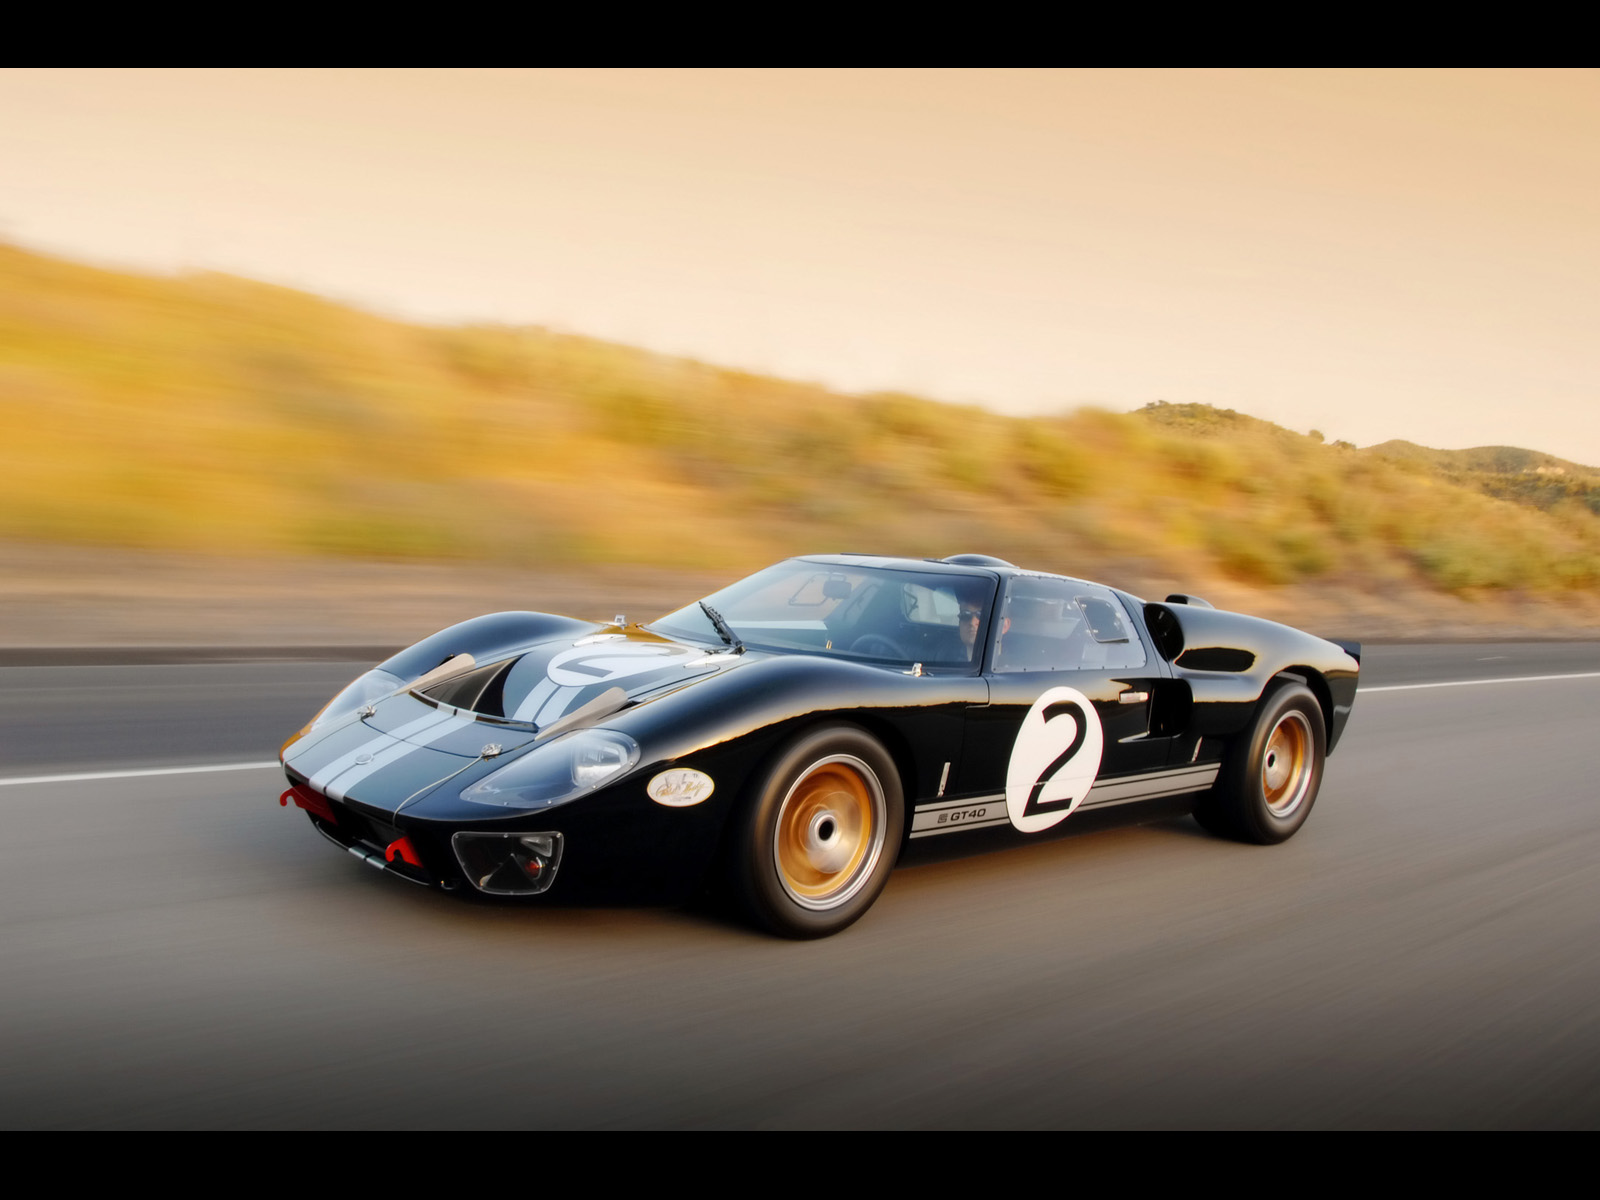 Shelby Distribution Shelby 85th Commemorative GT40 photo 54484